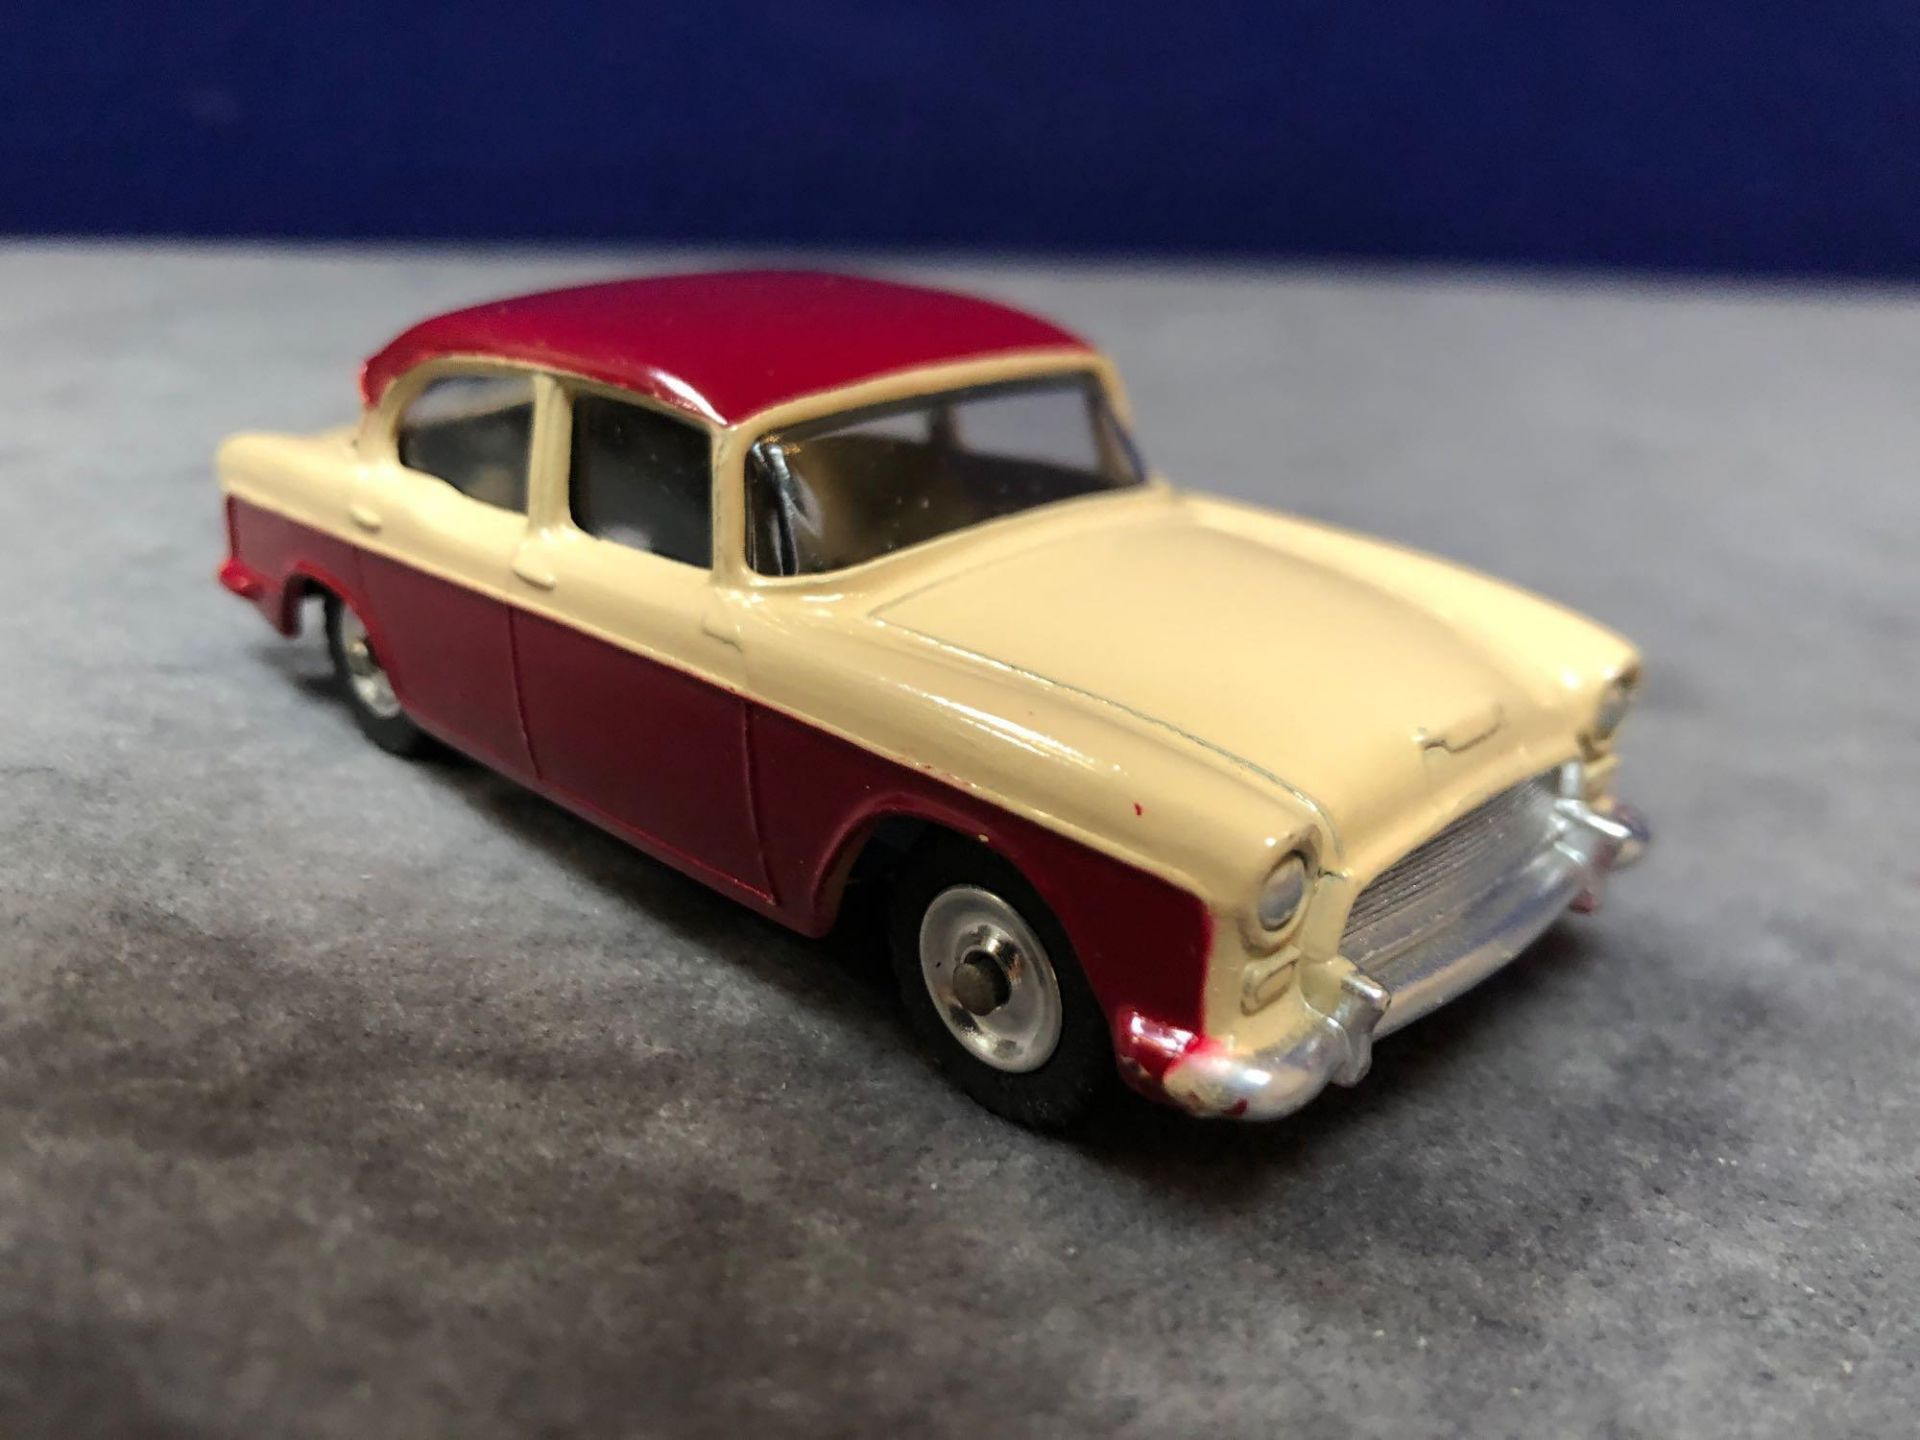 Dinky #165 Humber Hawk Maroon/Fawn - Spun Hubs With Box 1959-1963 - Image 2 of 4